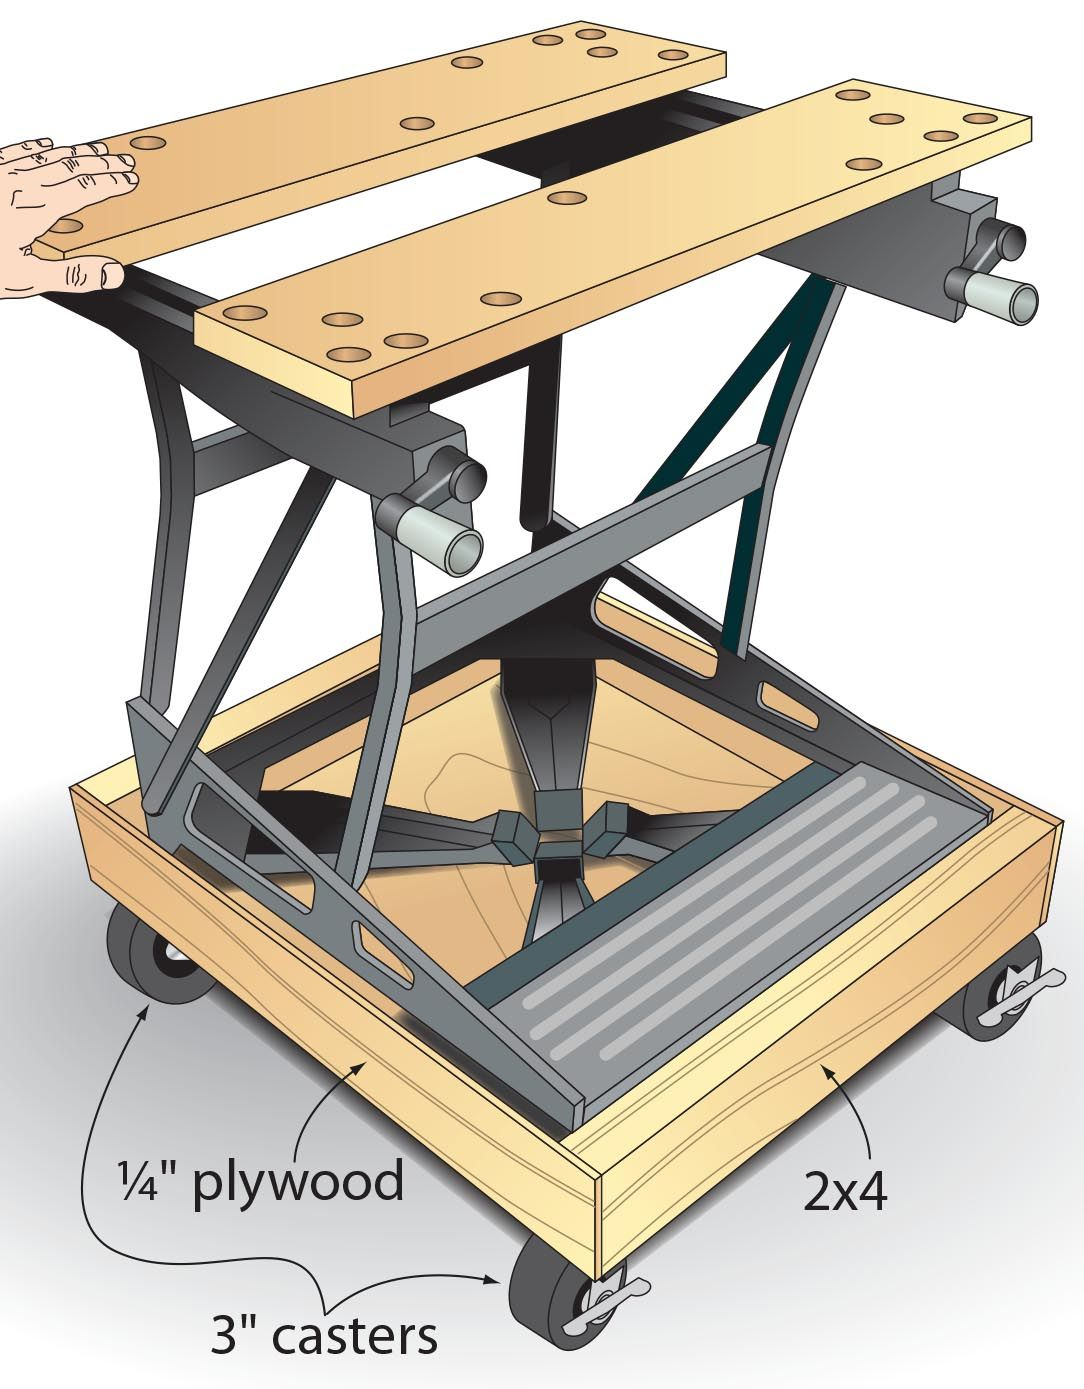 """In my small shop, any tool that doesn't fit on a shelf gets casters added to help me make the most of the space I do have. But in the case of my collapsible workstation, there wasn't a good place to mount casters without interfering with the bench's folding function. So I built this base from 2x4s and 1⁄4"""" plywood, mounting 3"""" locking casters under it. Now, after collapsing the bench, I simply roll it beneath other machines for storage. —Cory Hoehn, Jeffersonville, Ind."""